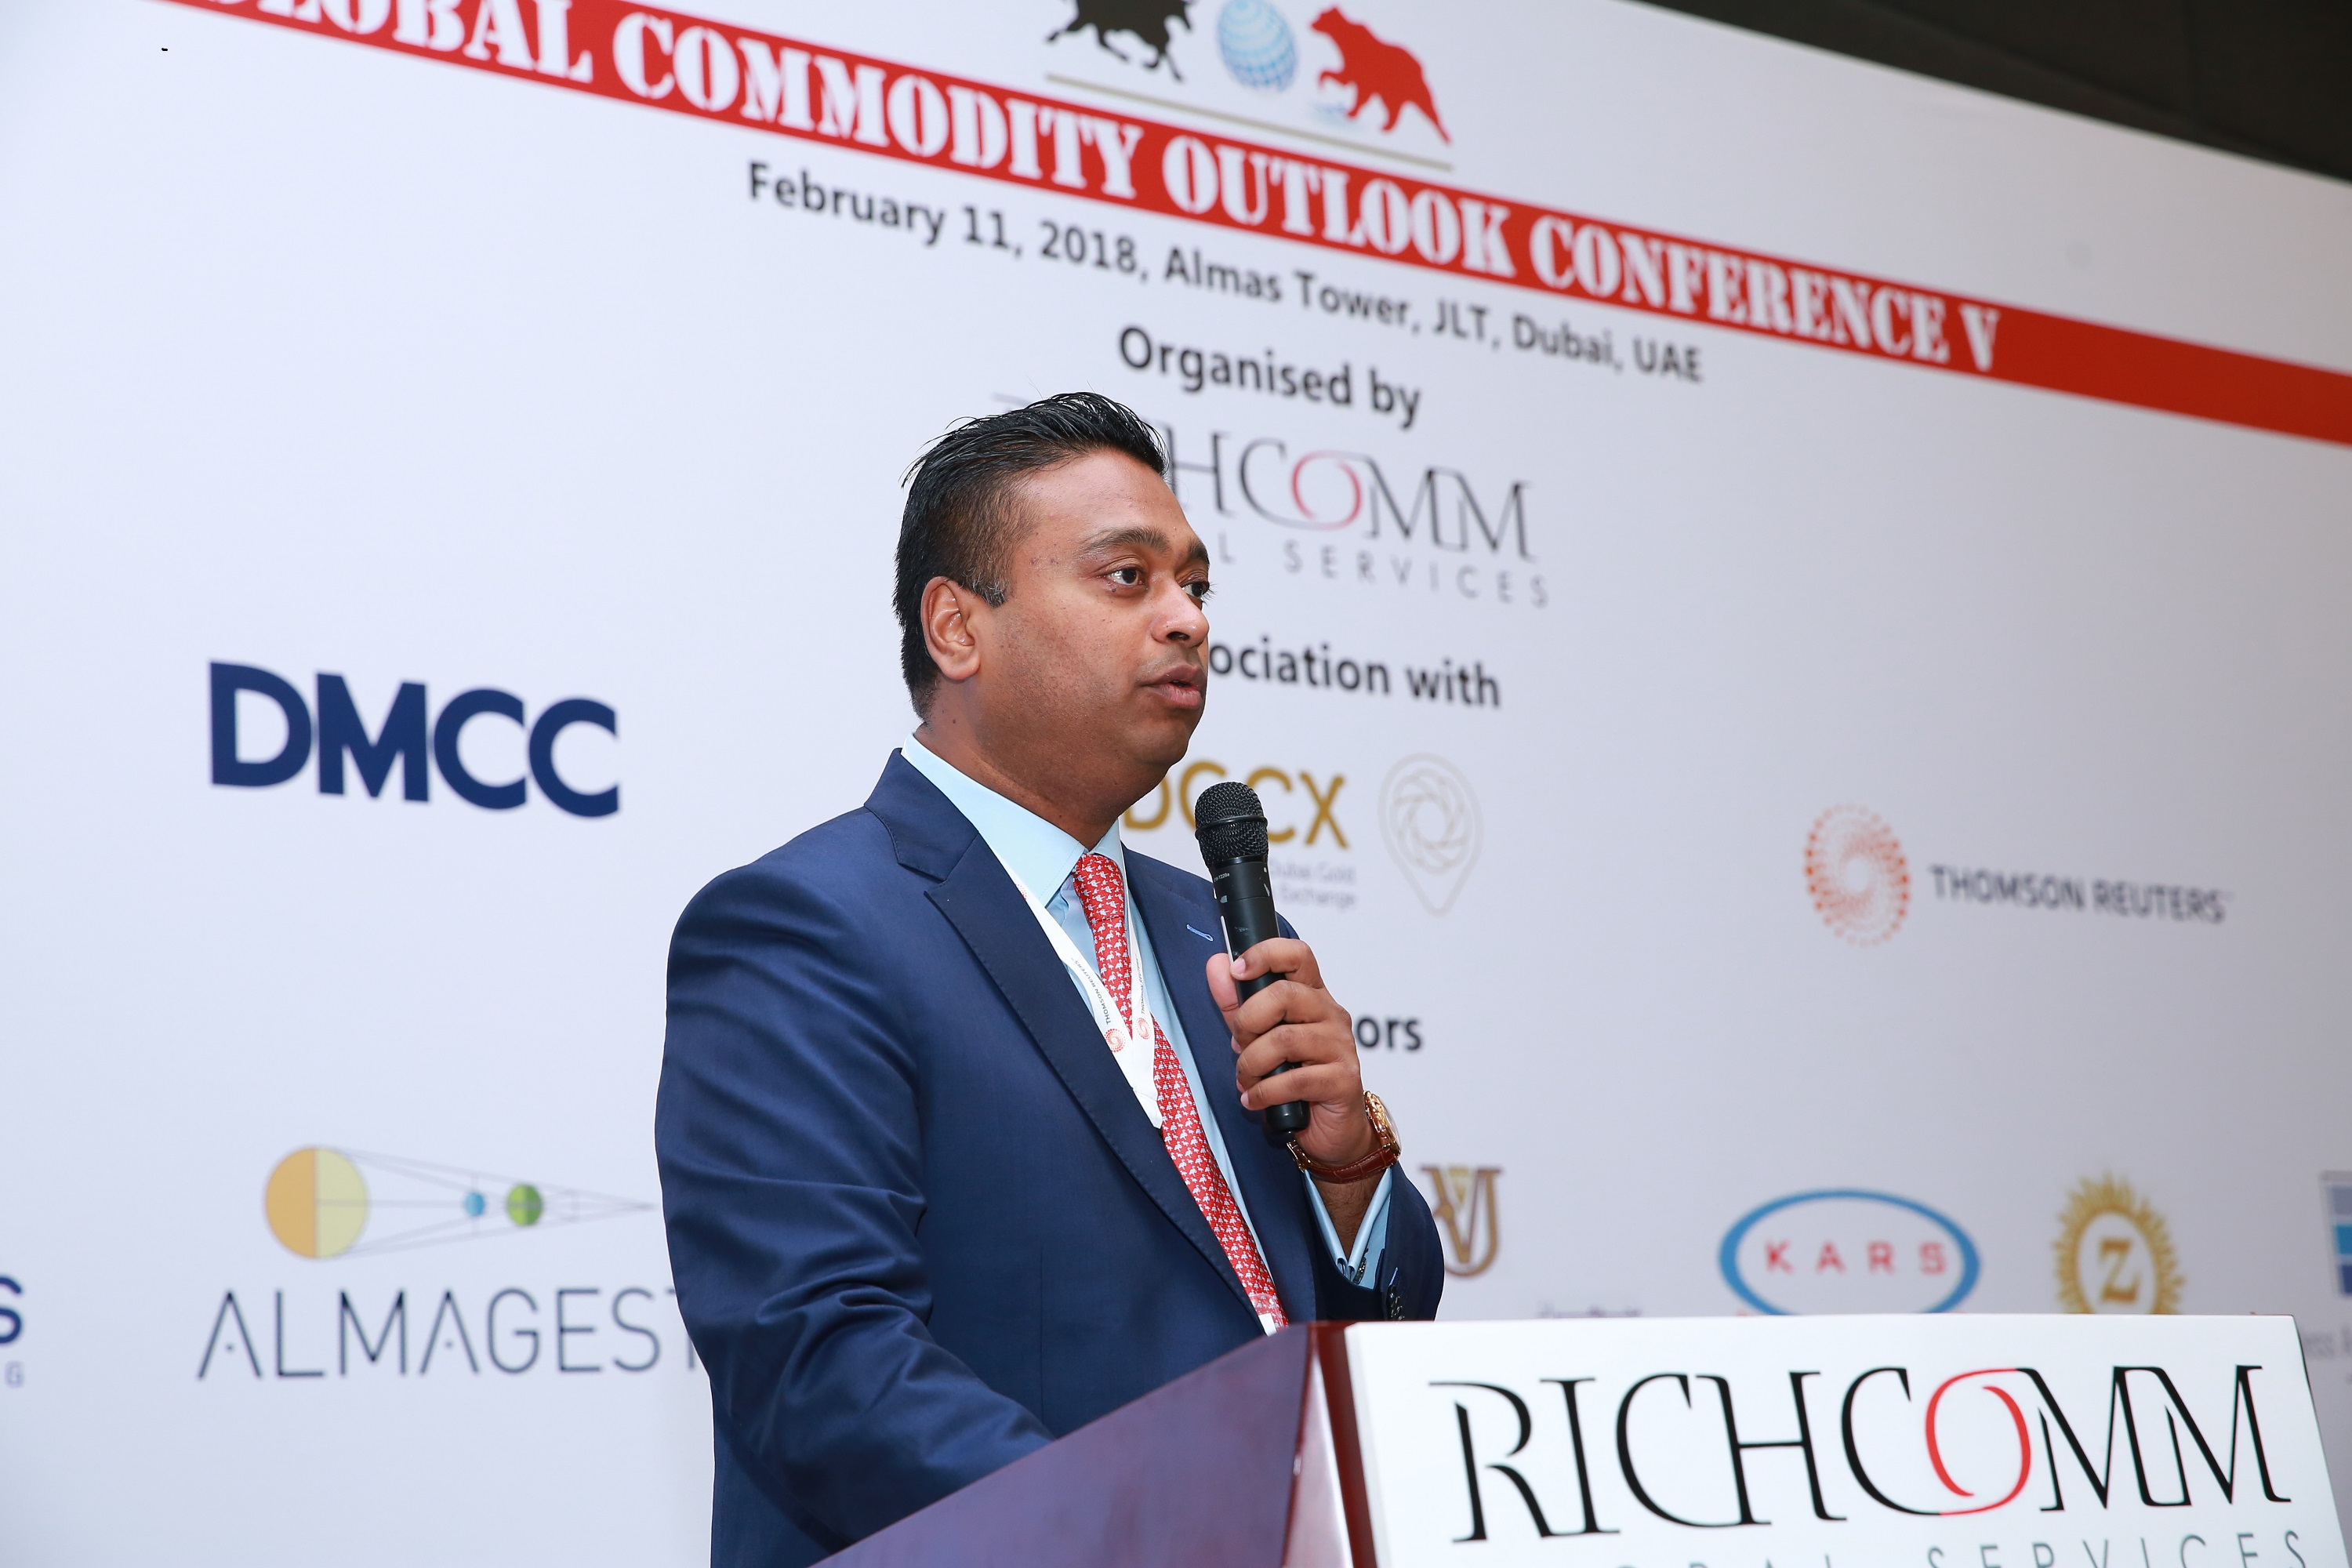 Commodity experts tackle latest industry trends at the 5th Global